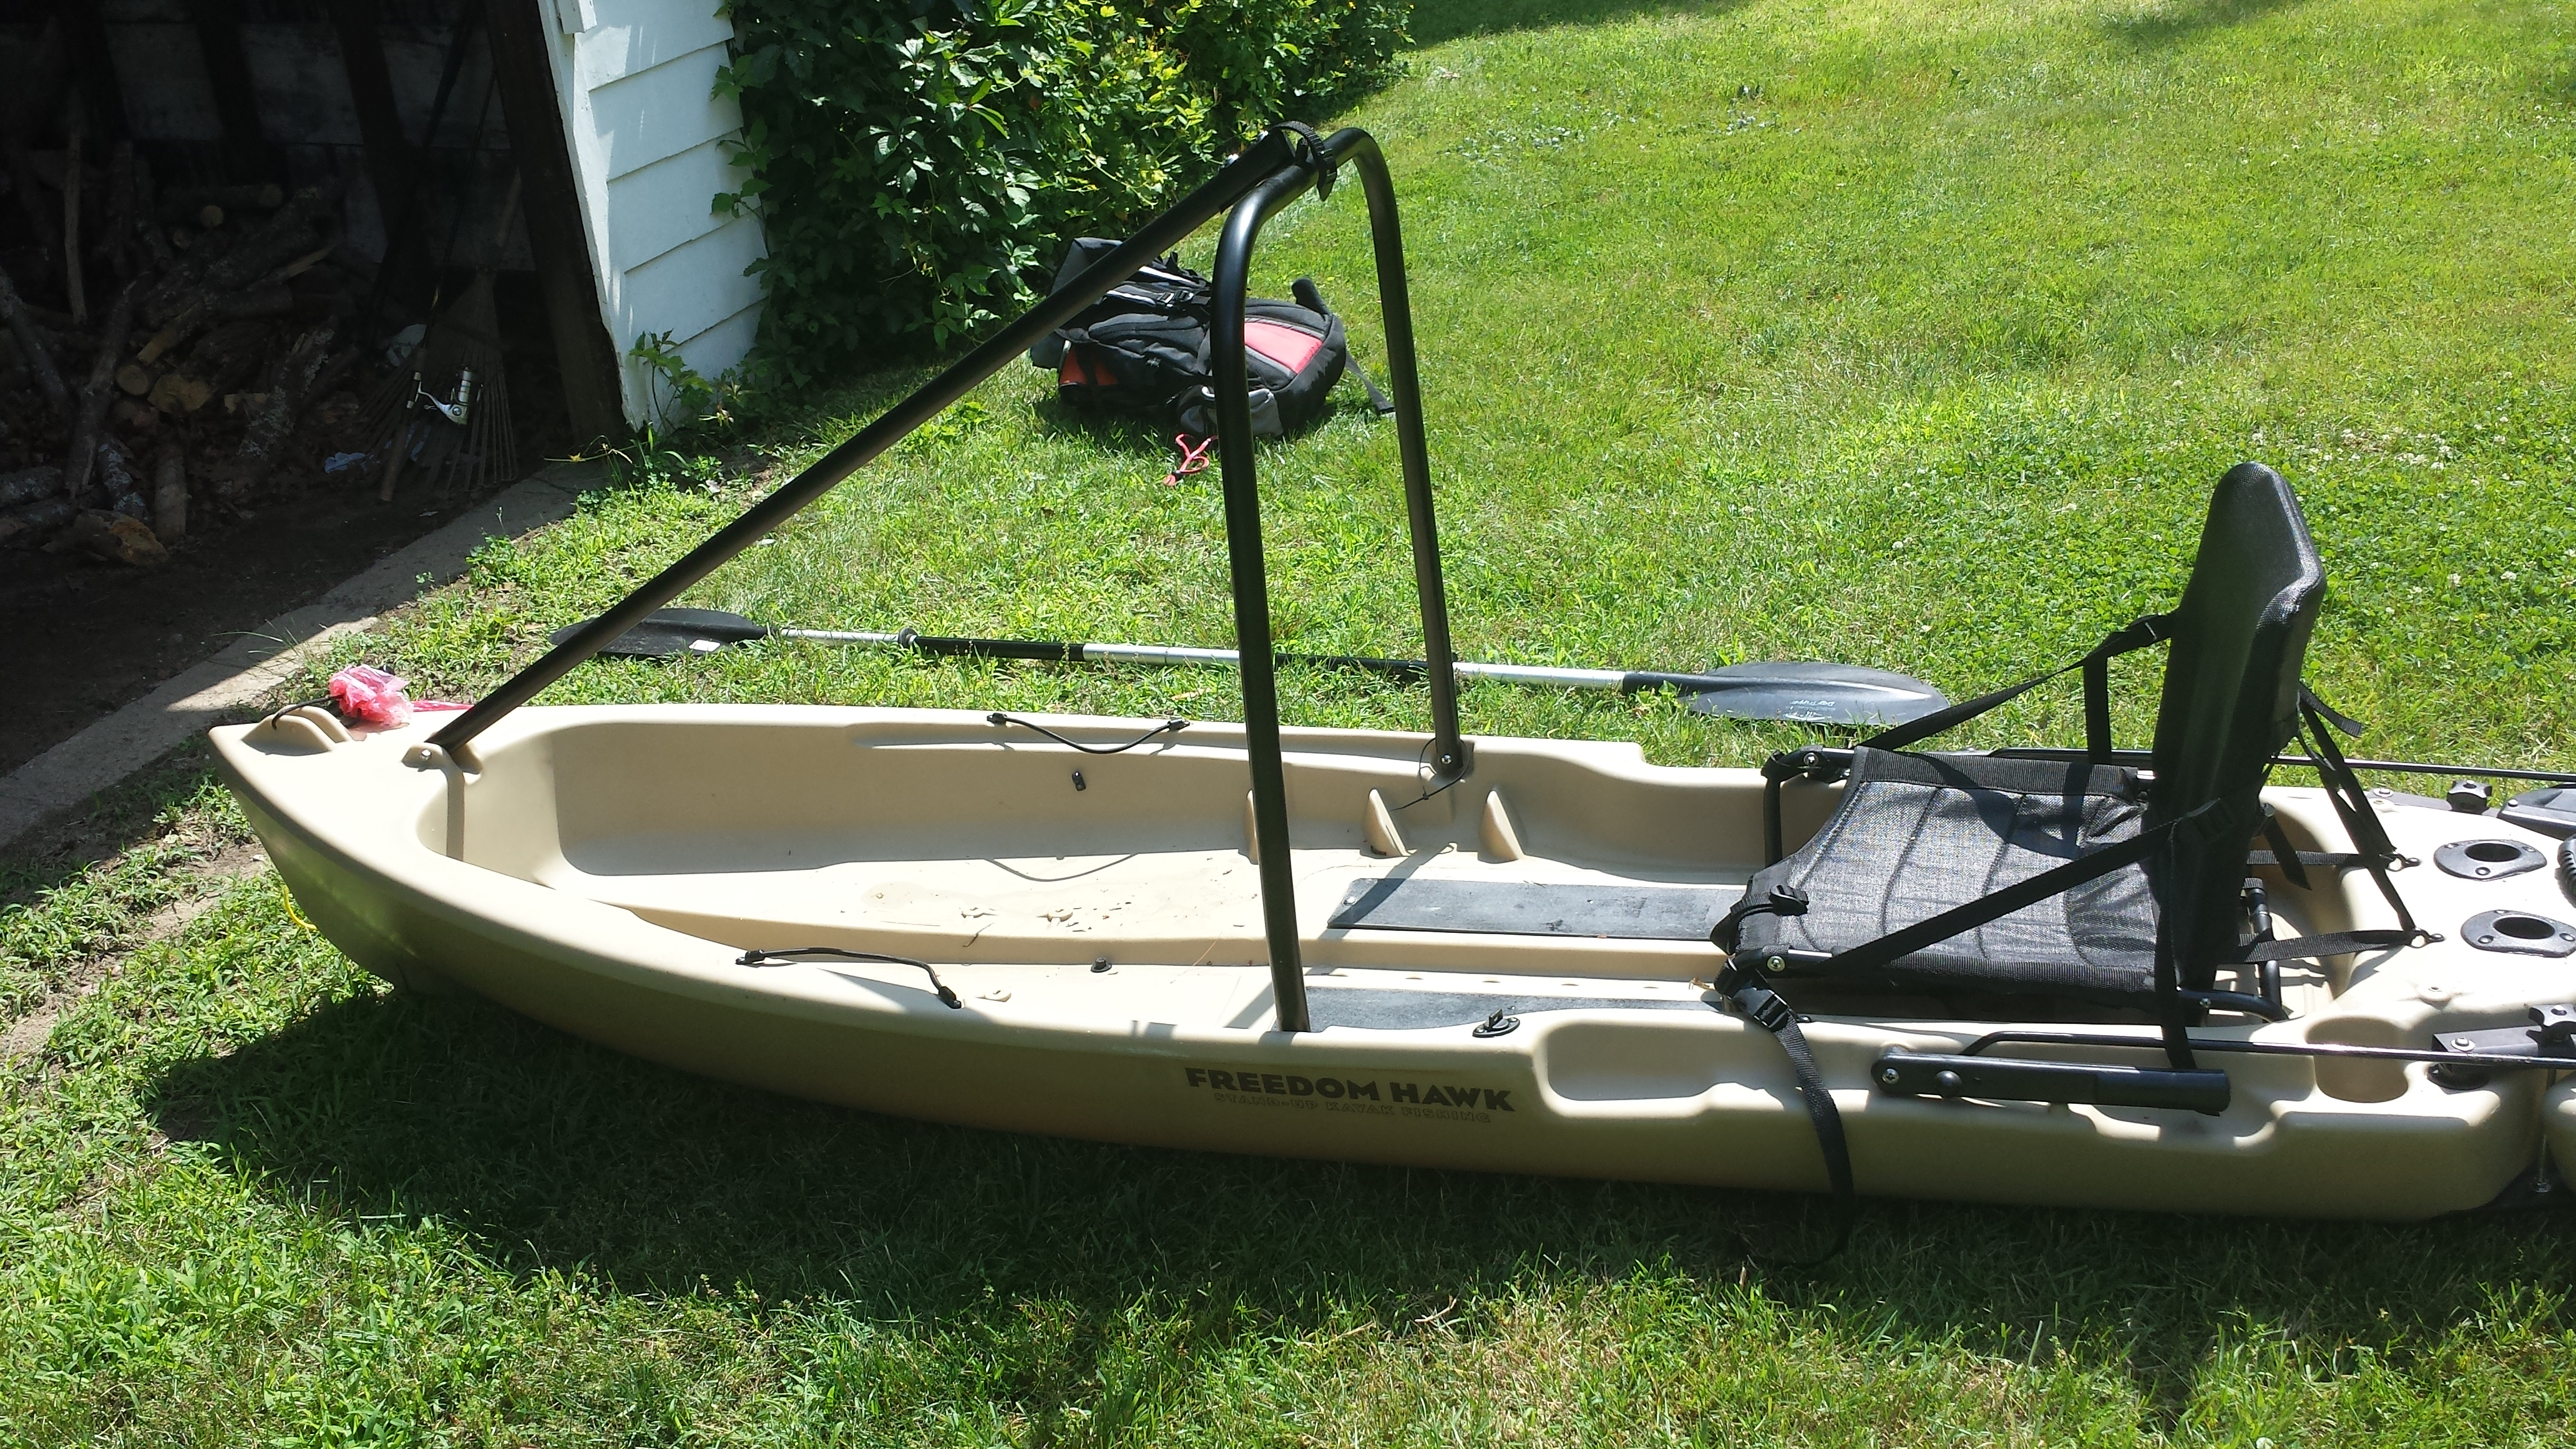 Freedom hawk 12 fishing kayak for sale kayaking and for Fishing kayak sale